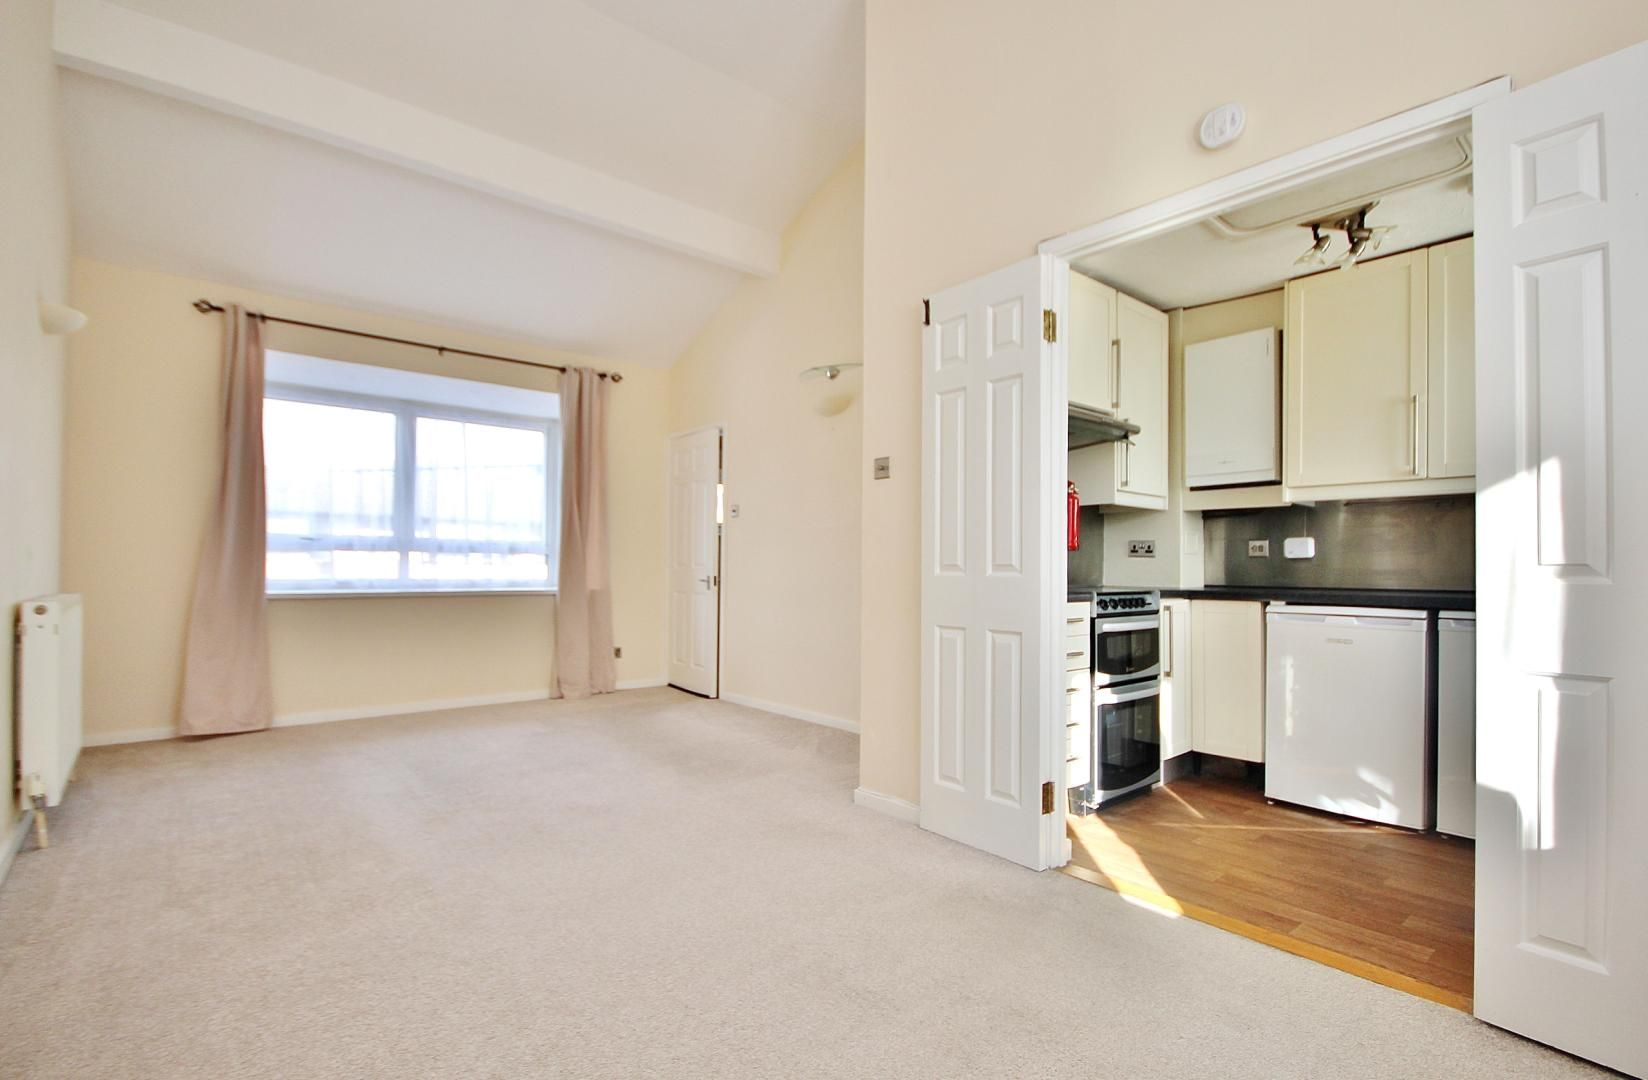 4 bed house to rent in Barnfield Place - Property Image 1